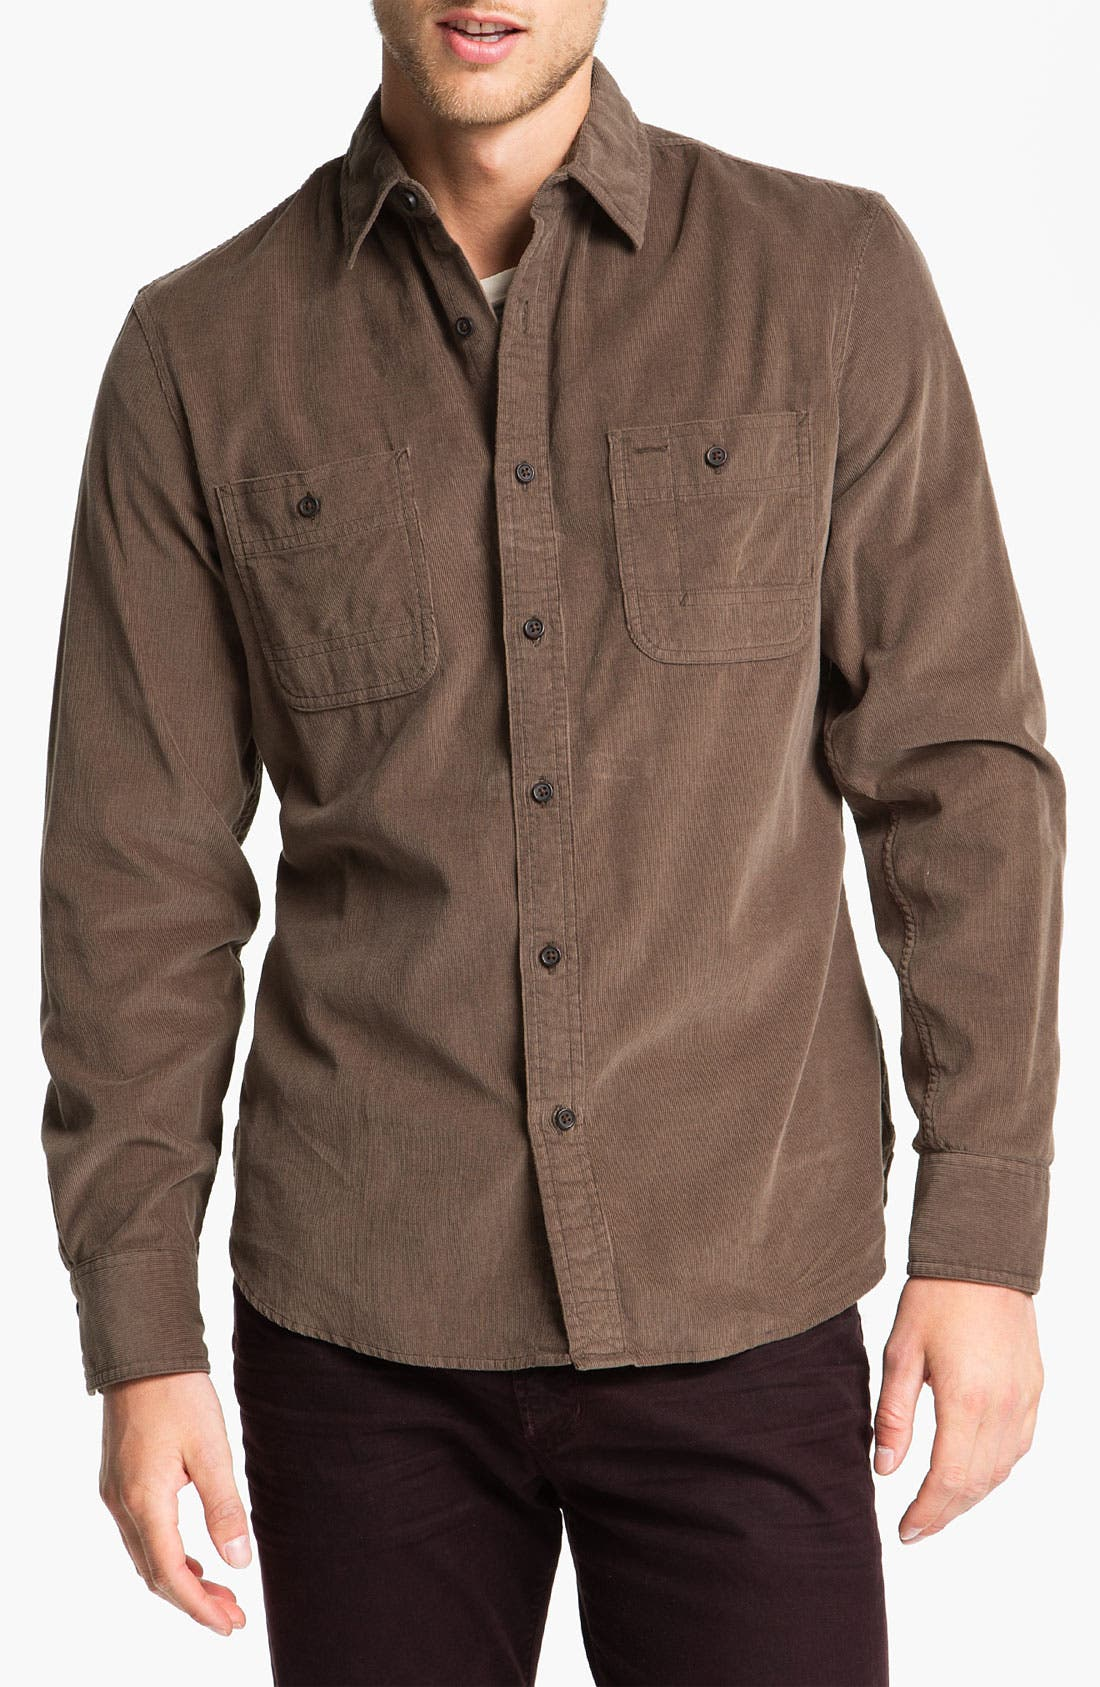 Alternate Image 1 Selected - Wallin & Bros. Corduroy Work Shirt